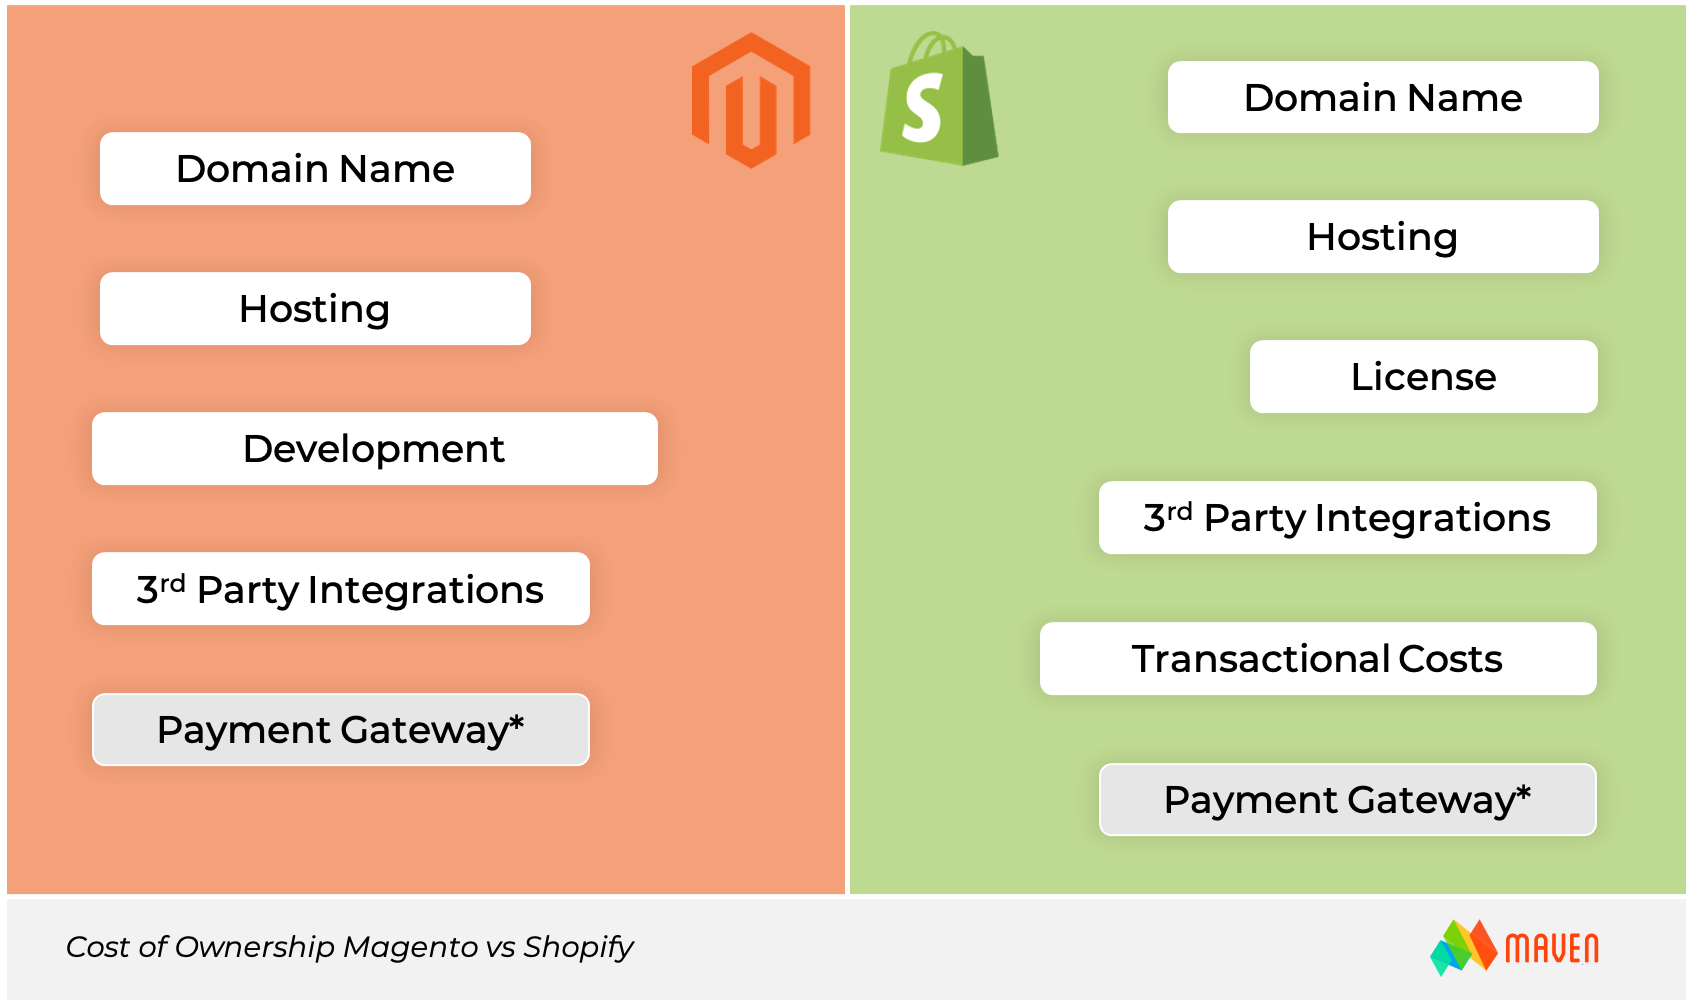 Magento or Shopify? Top 7 Differences That Matter